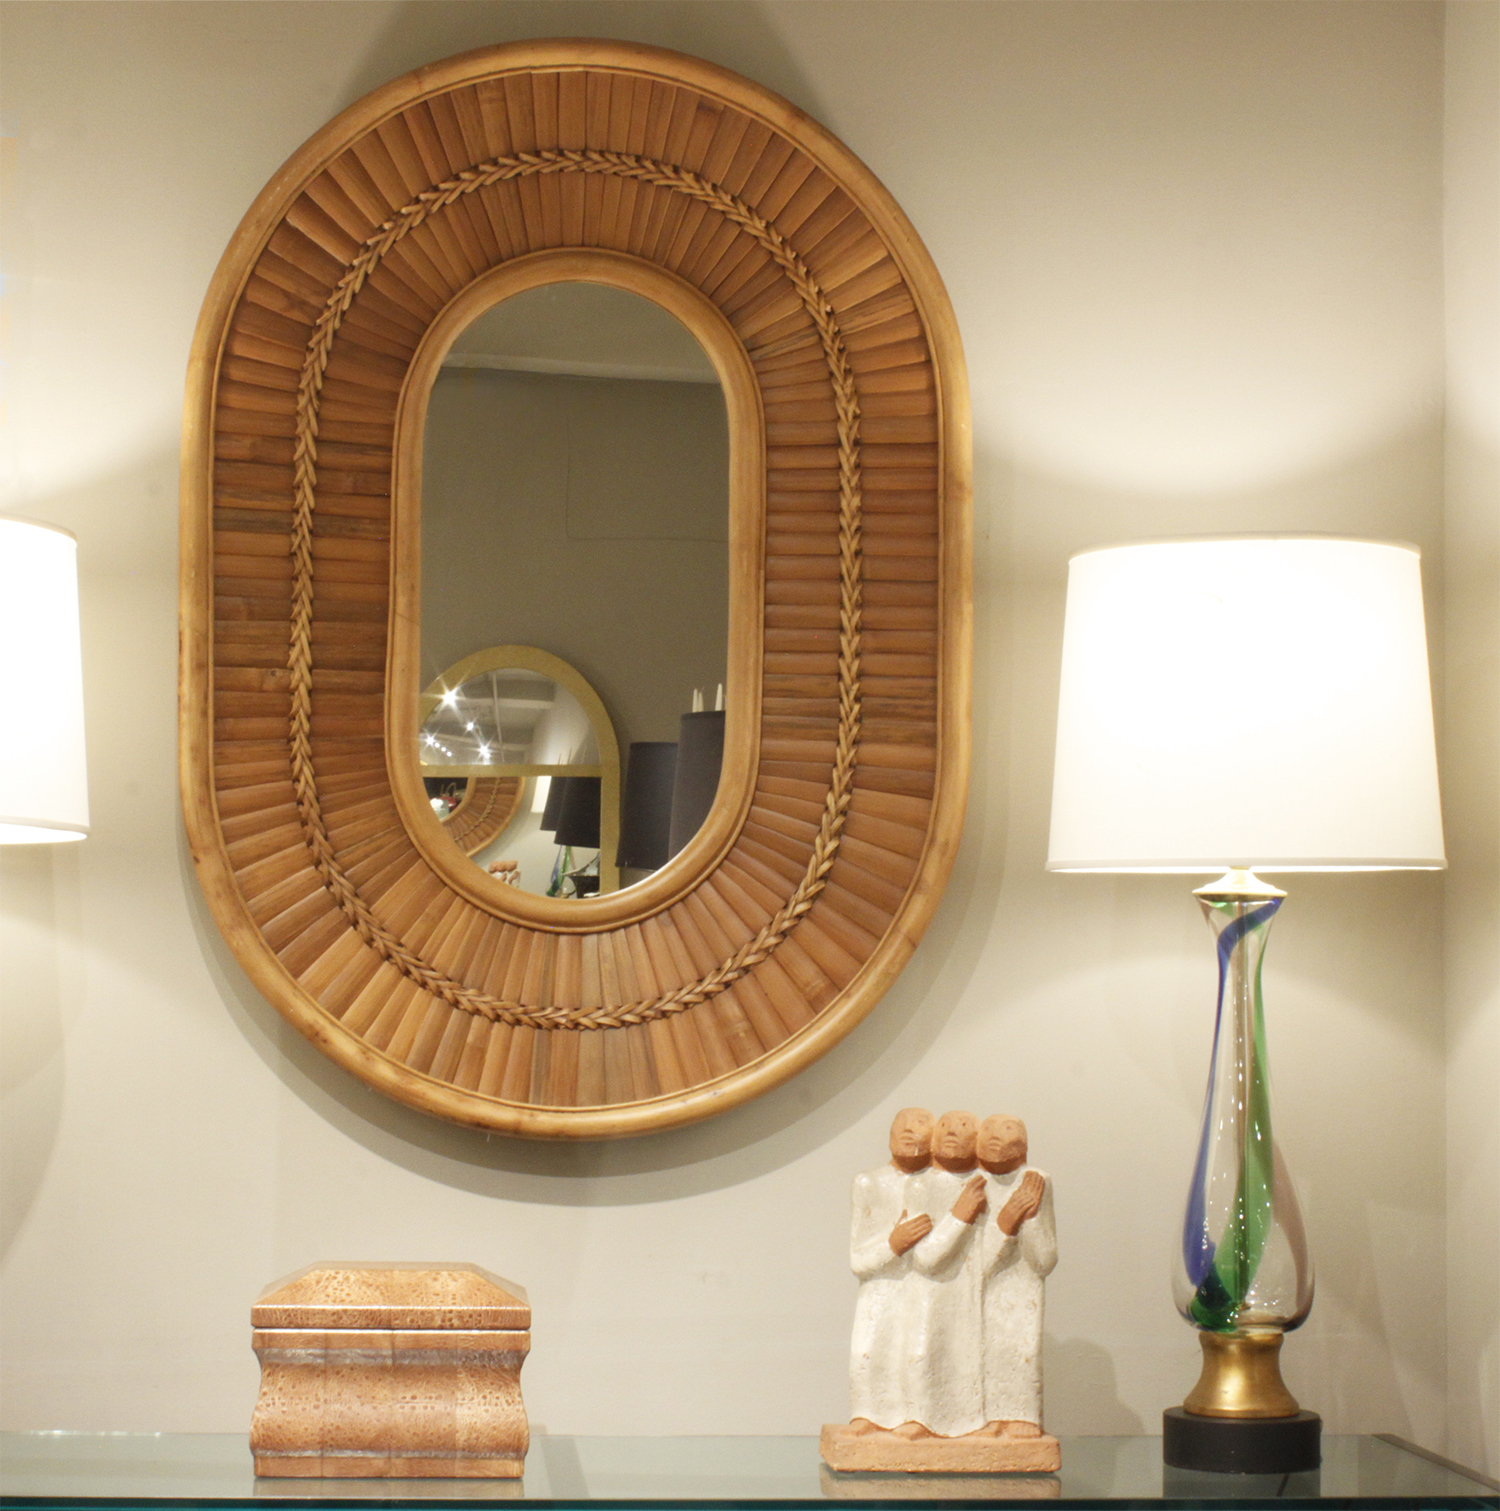 70s 65 bamboo + rattan oval mirror224 atm.jpg